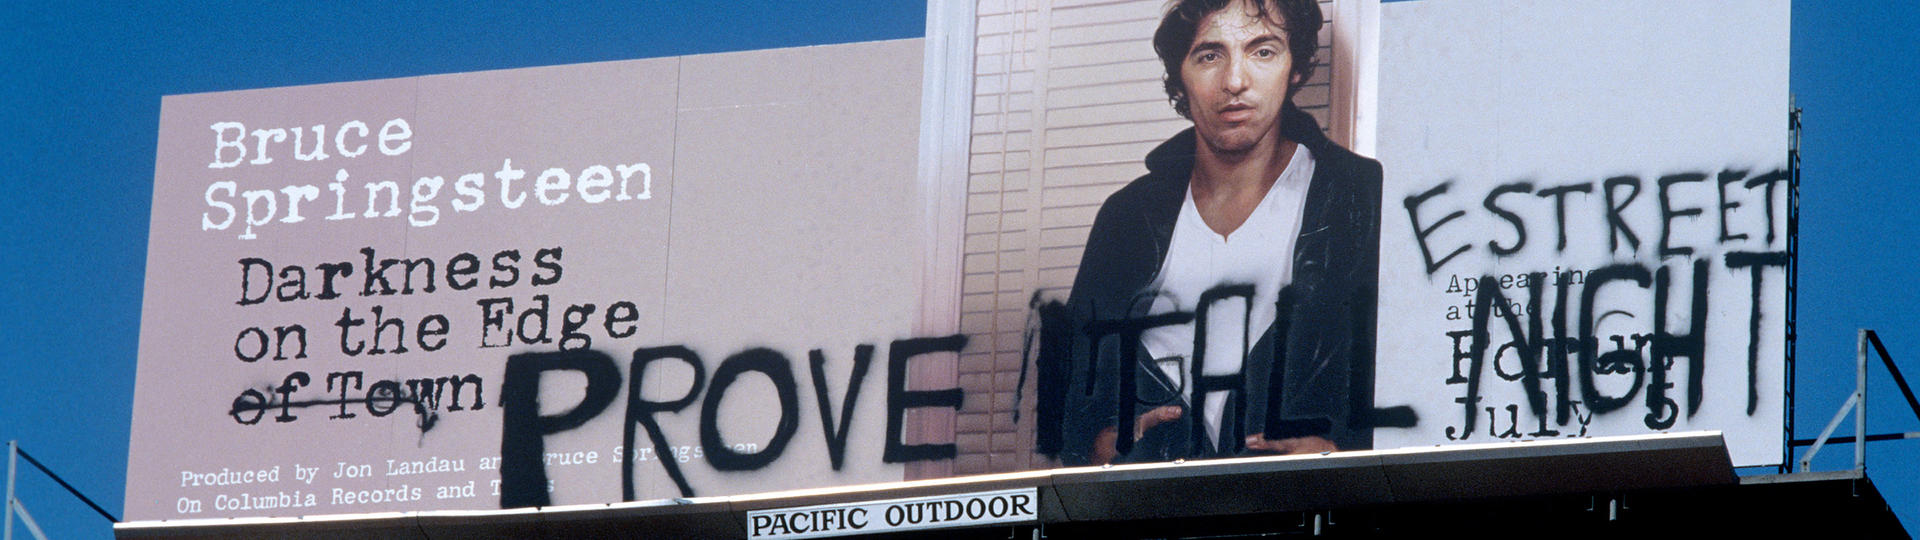 Billboard for Bruce Springsteen, Darkness on the Edge of Town